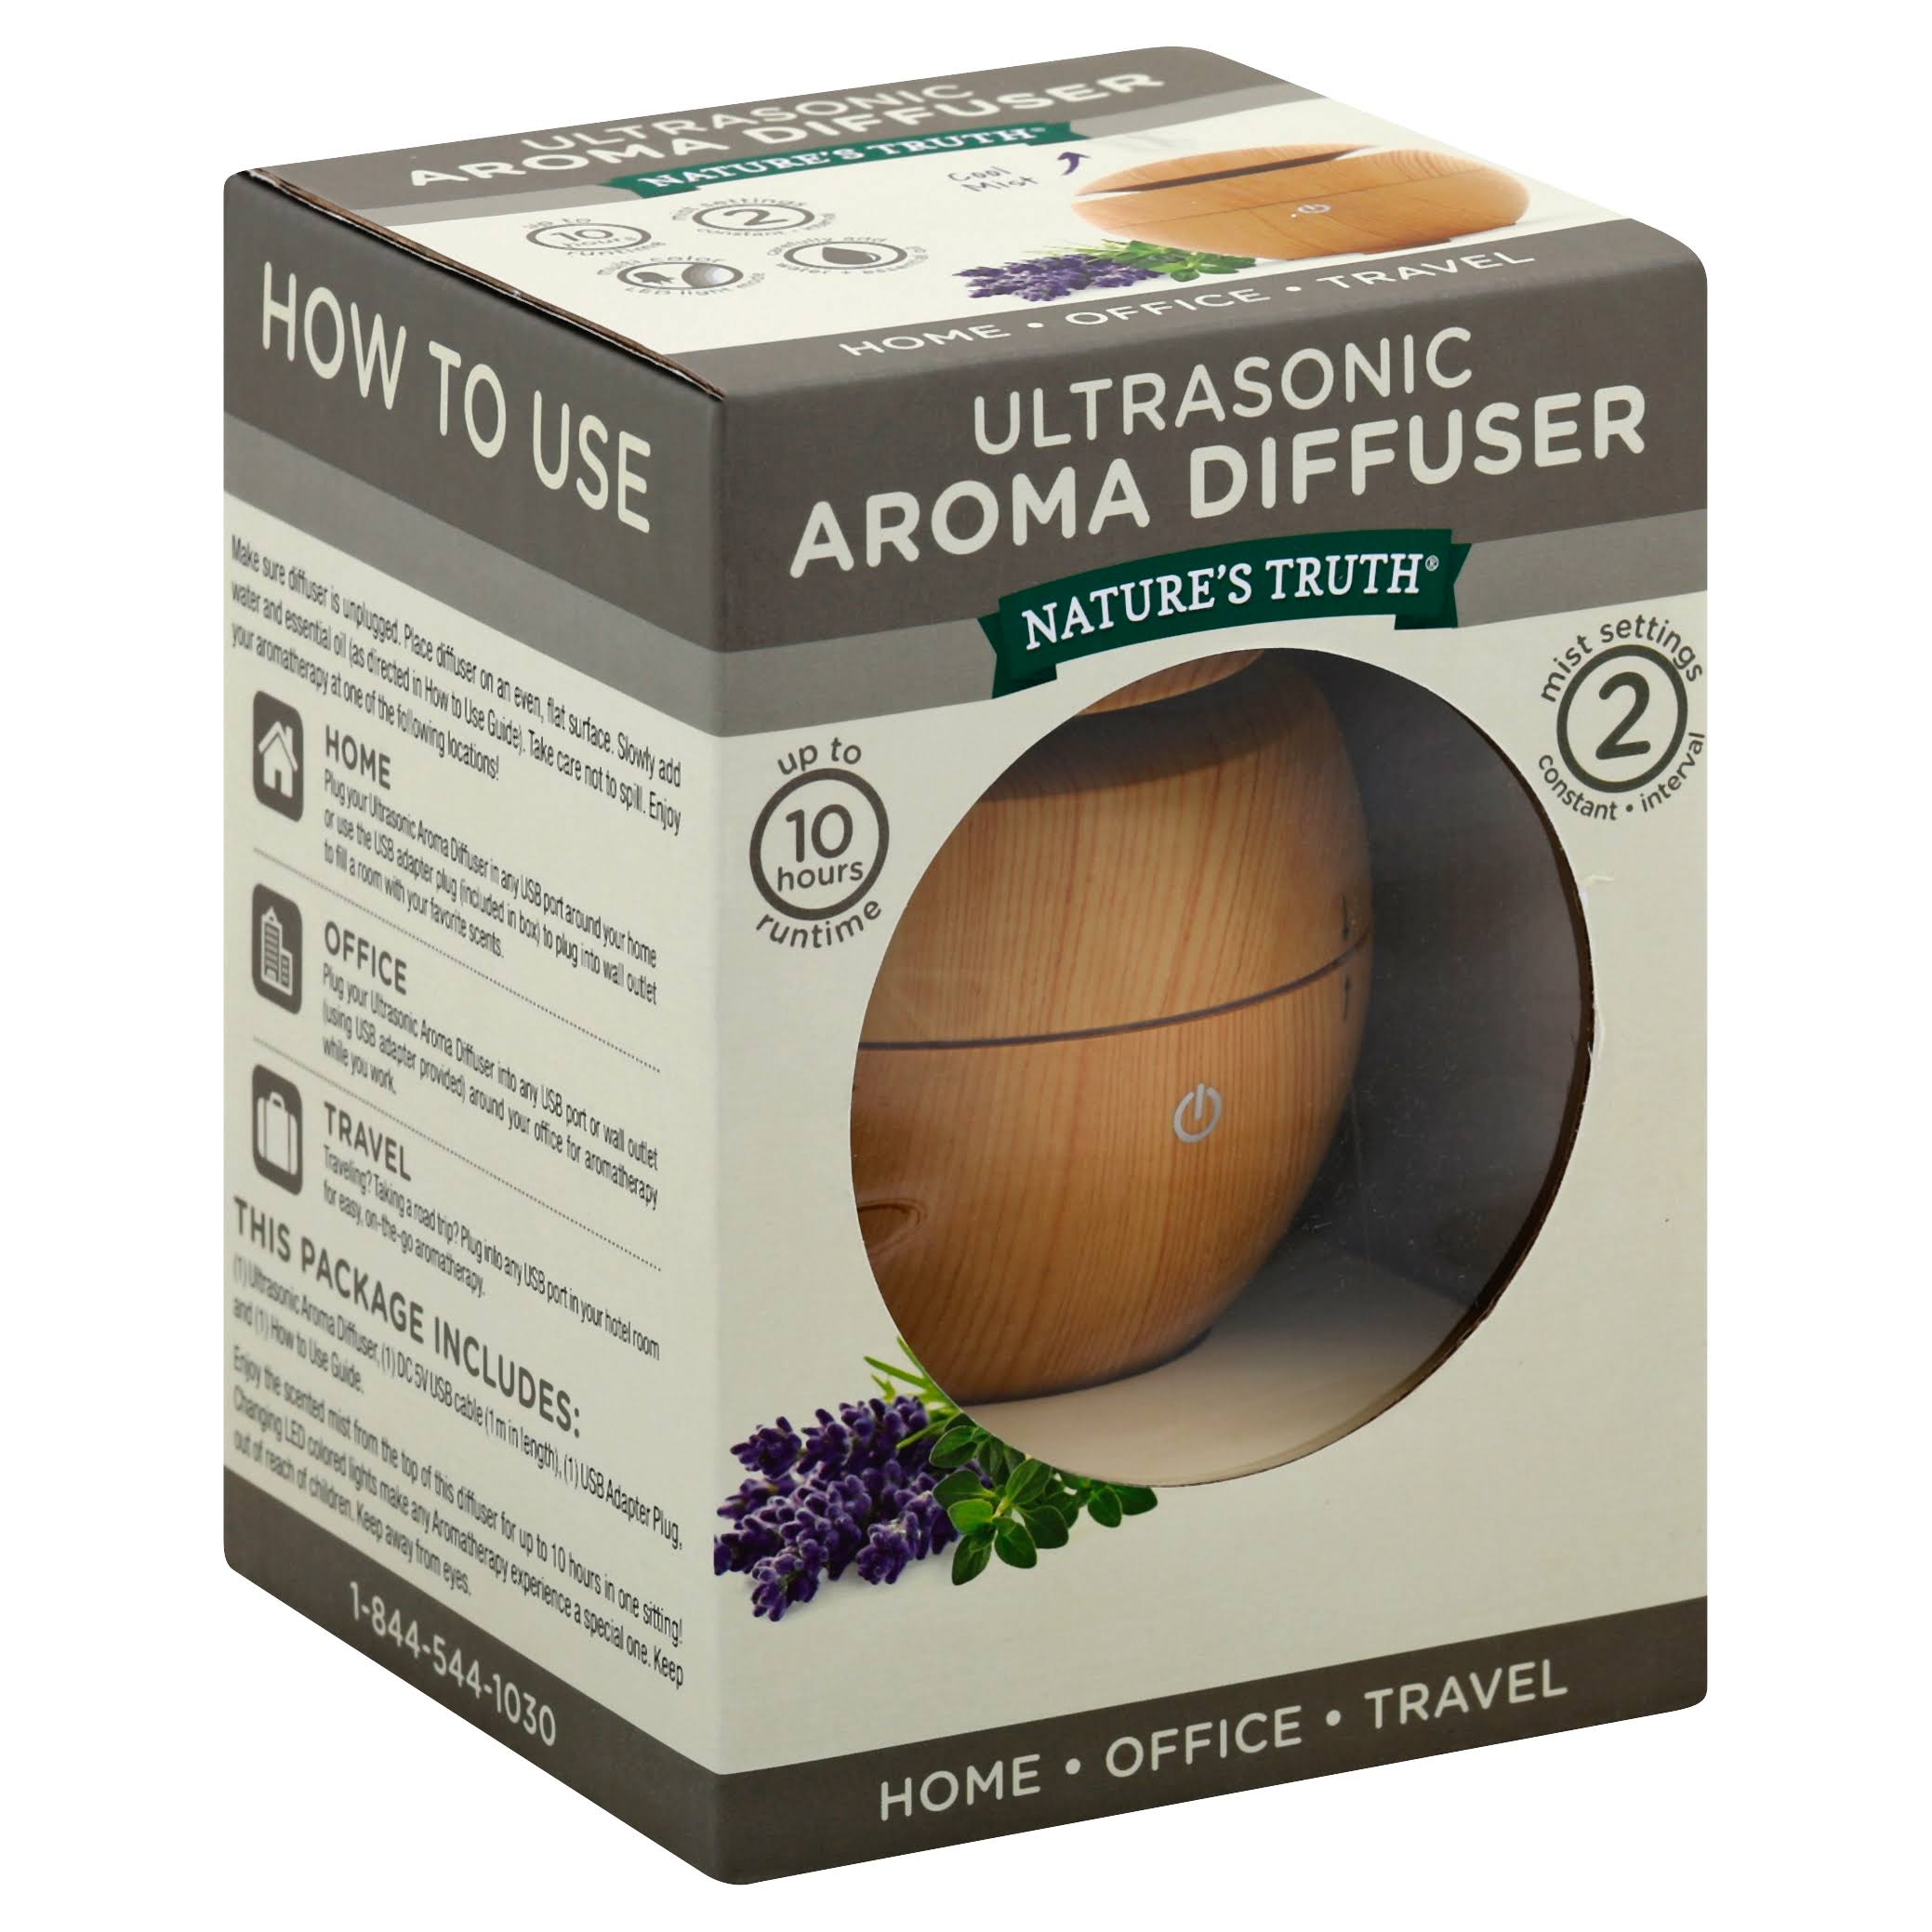 Nature's Truth Aromatherapy Aroma Diffuser - Cool Mist